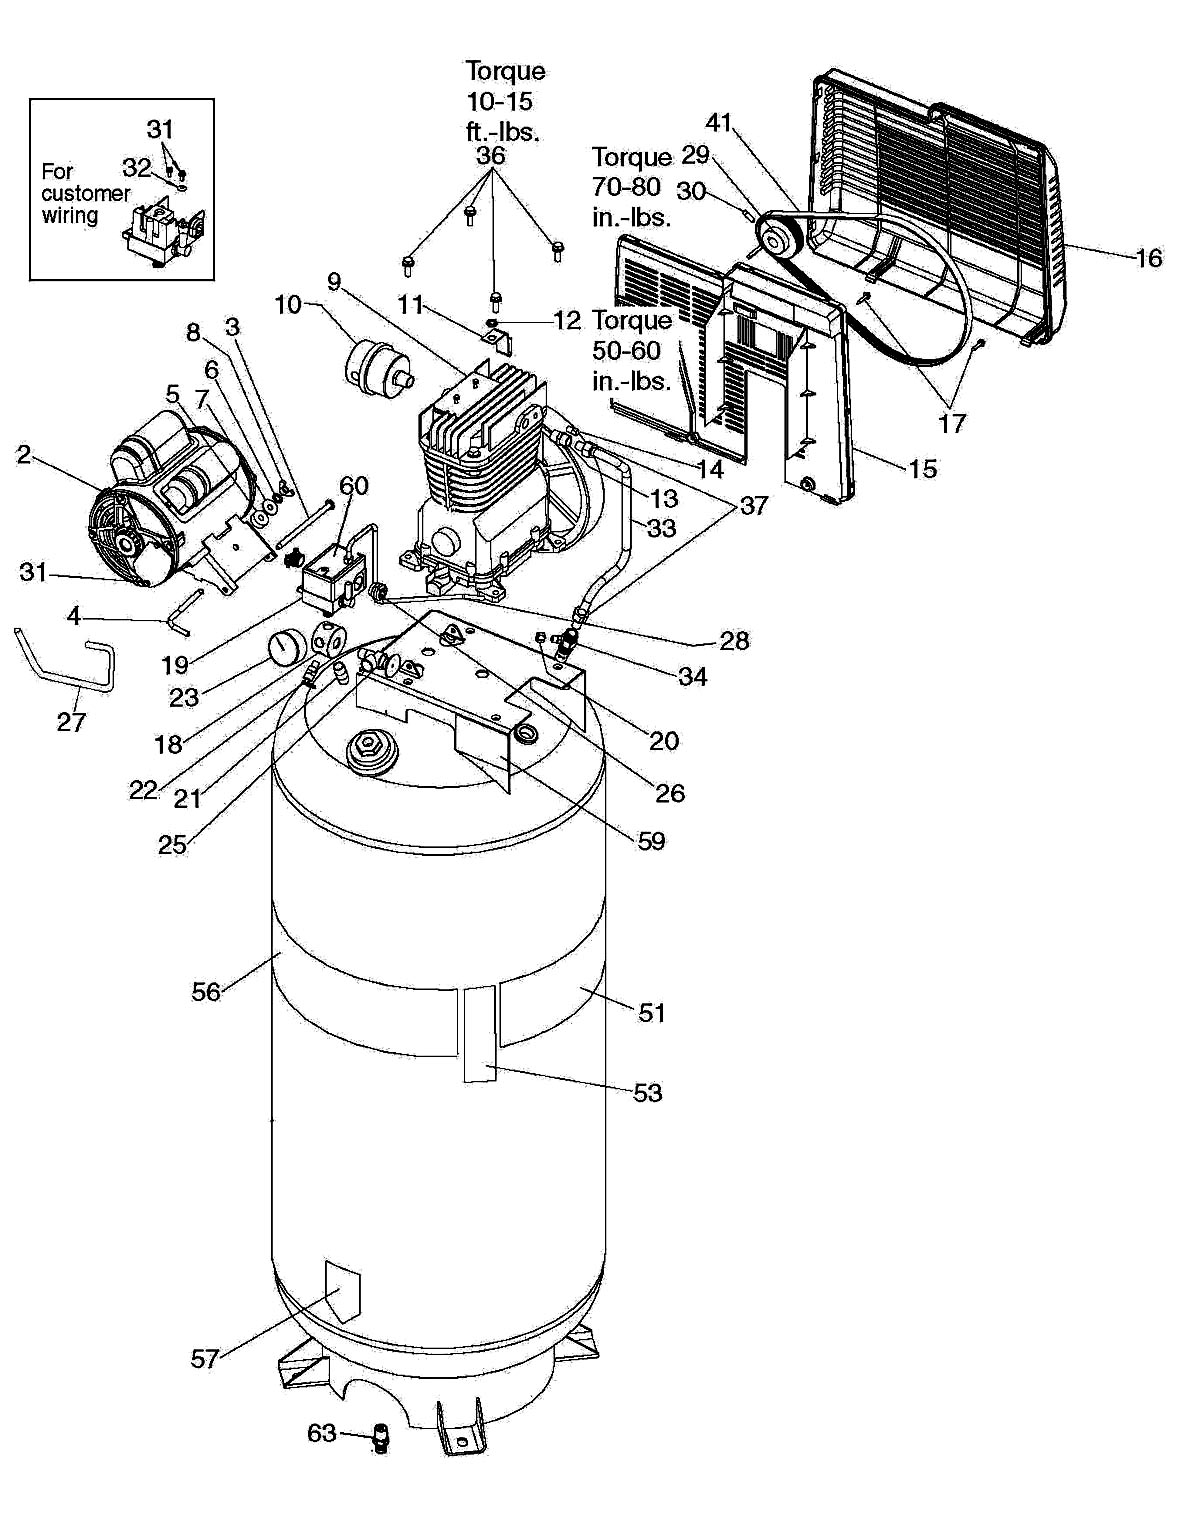 Sears Craftsman_919.184191_parts craftsman 919 184191 parts master tool repair wiring diagram for craftsman air compressor at edmiracle.co